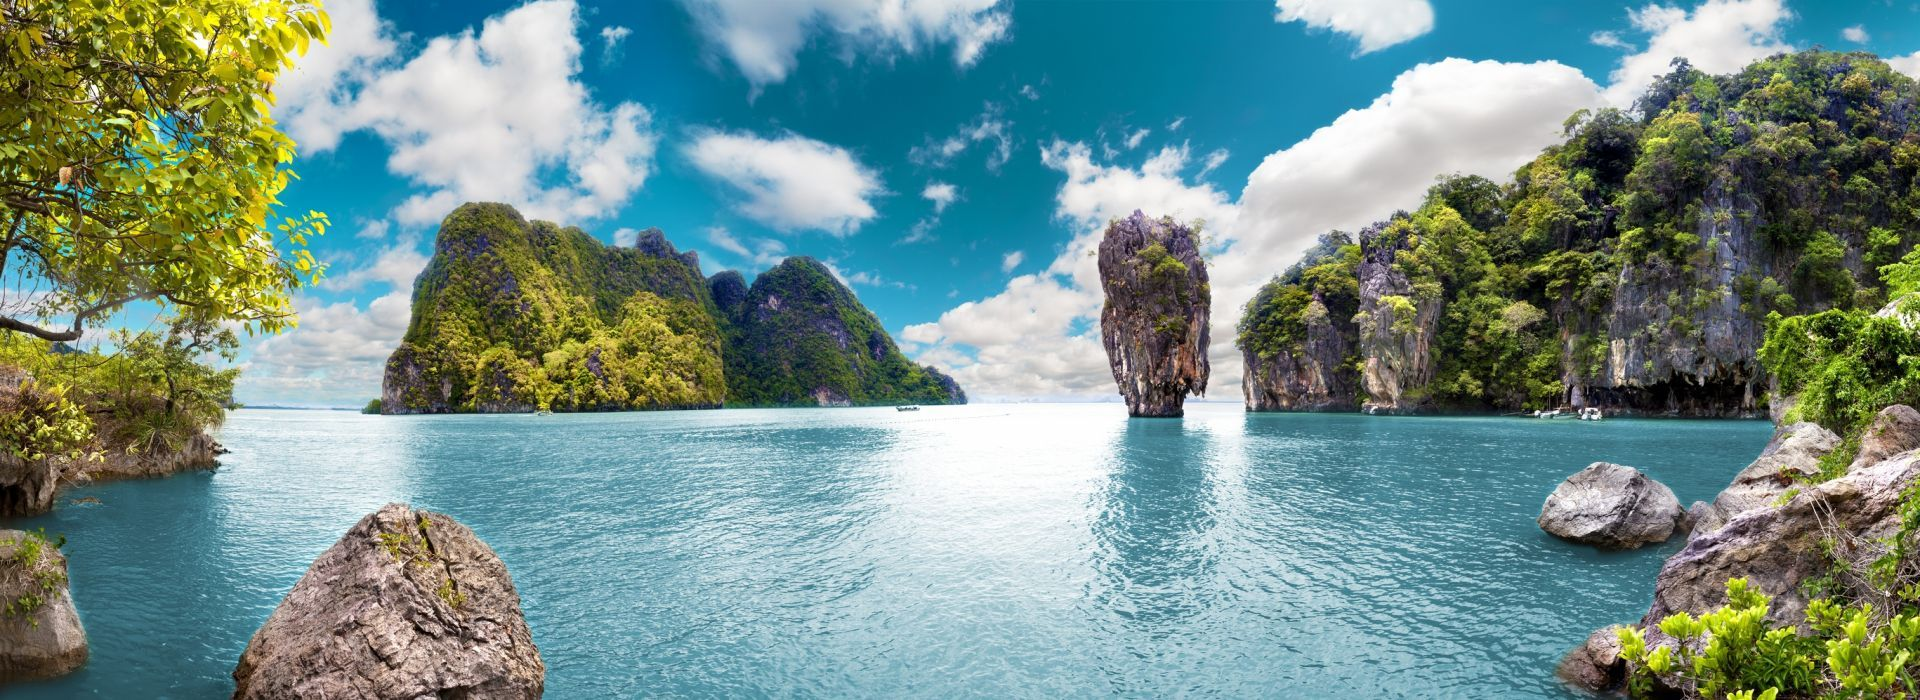 Rafting Tours in Thailand